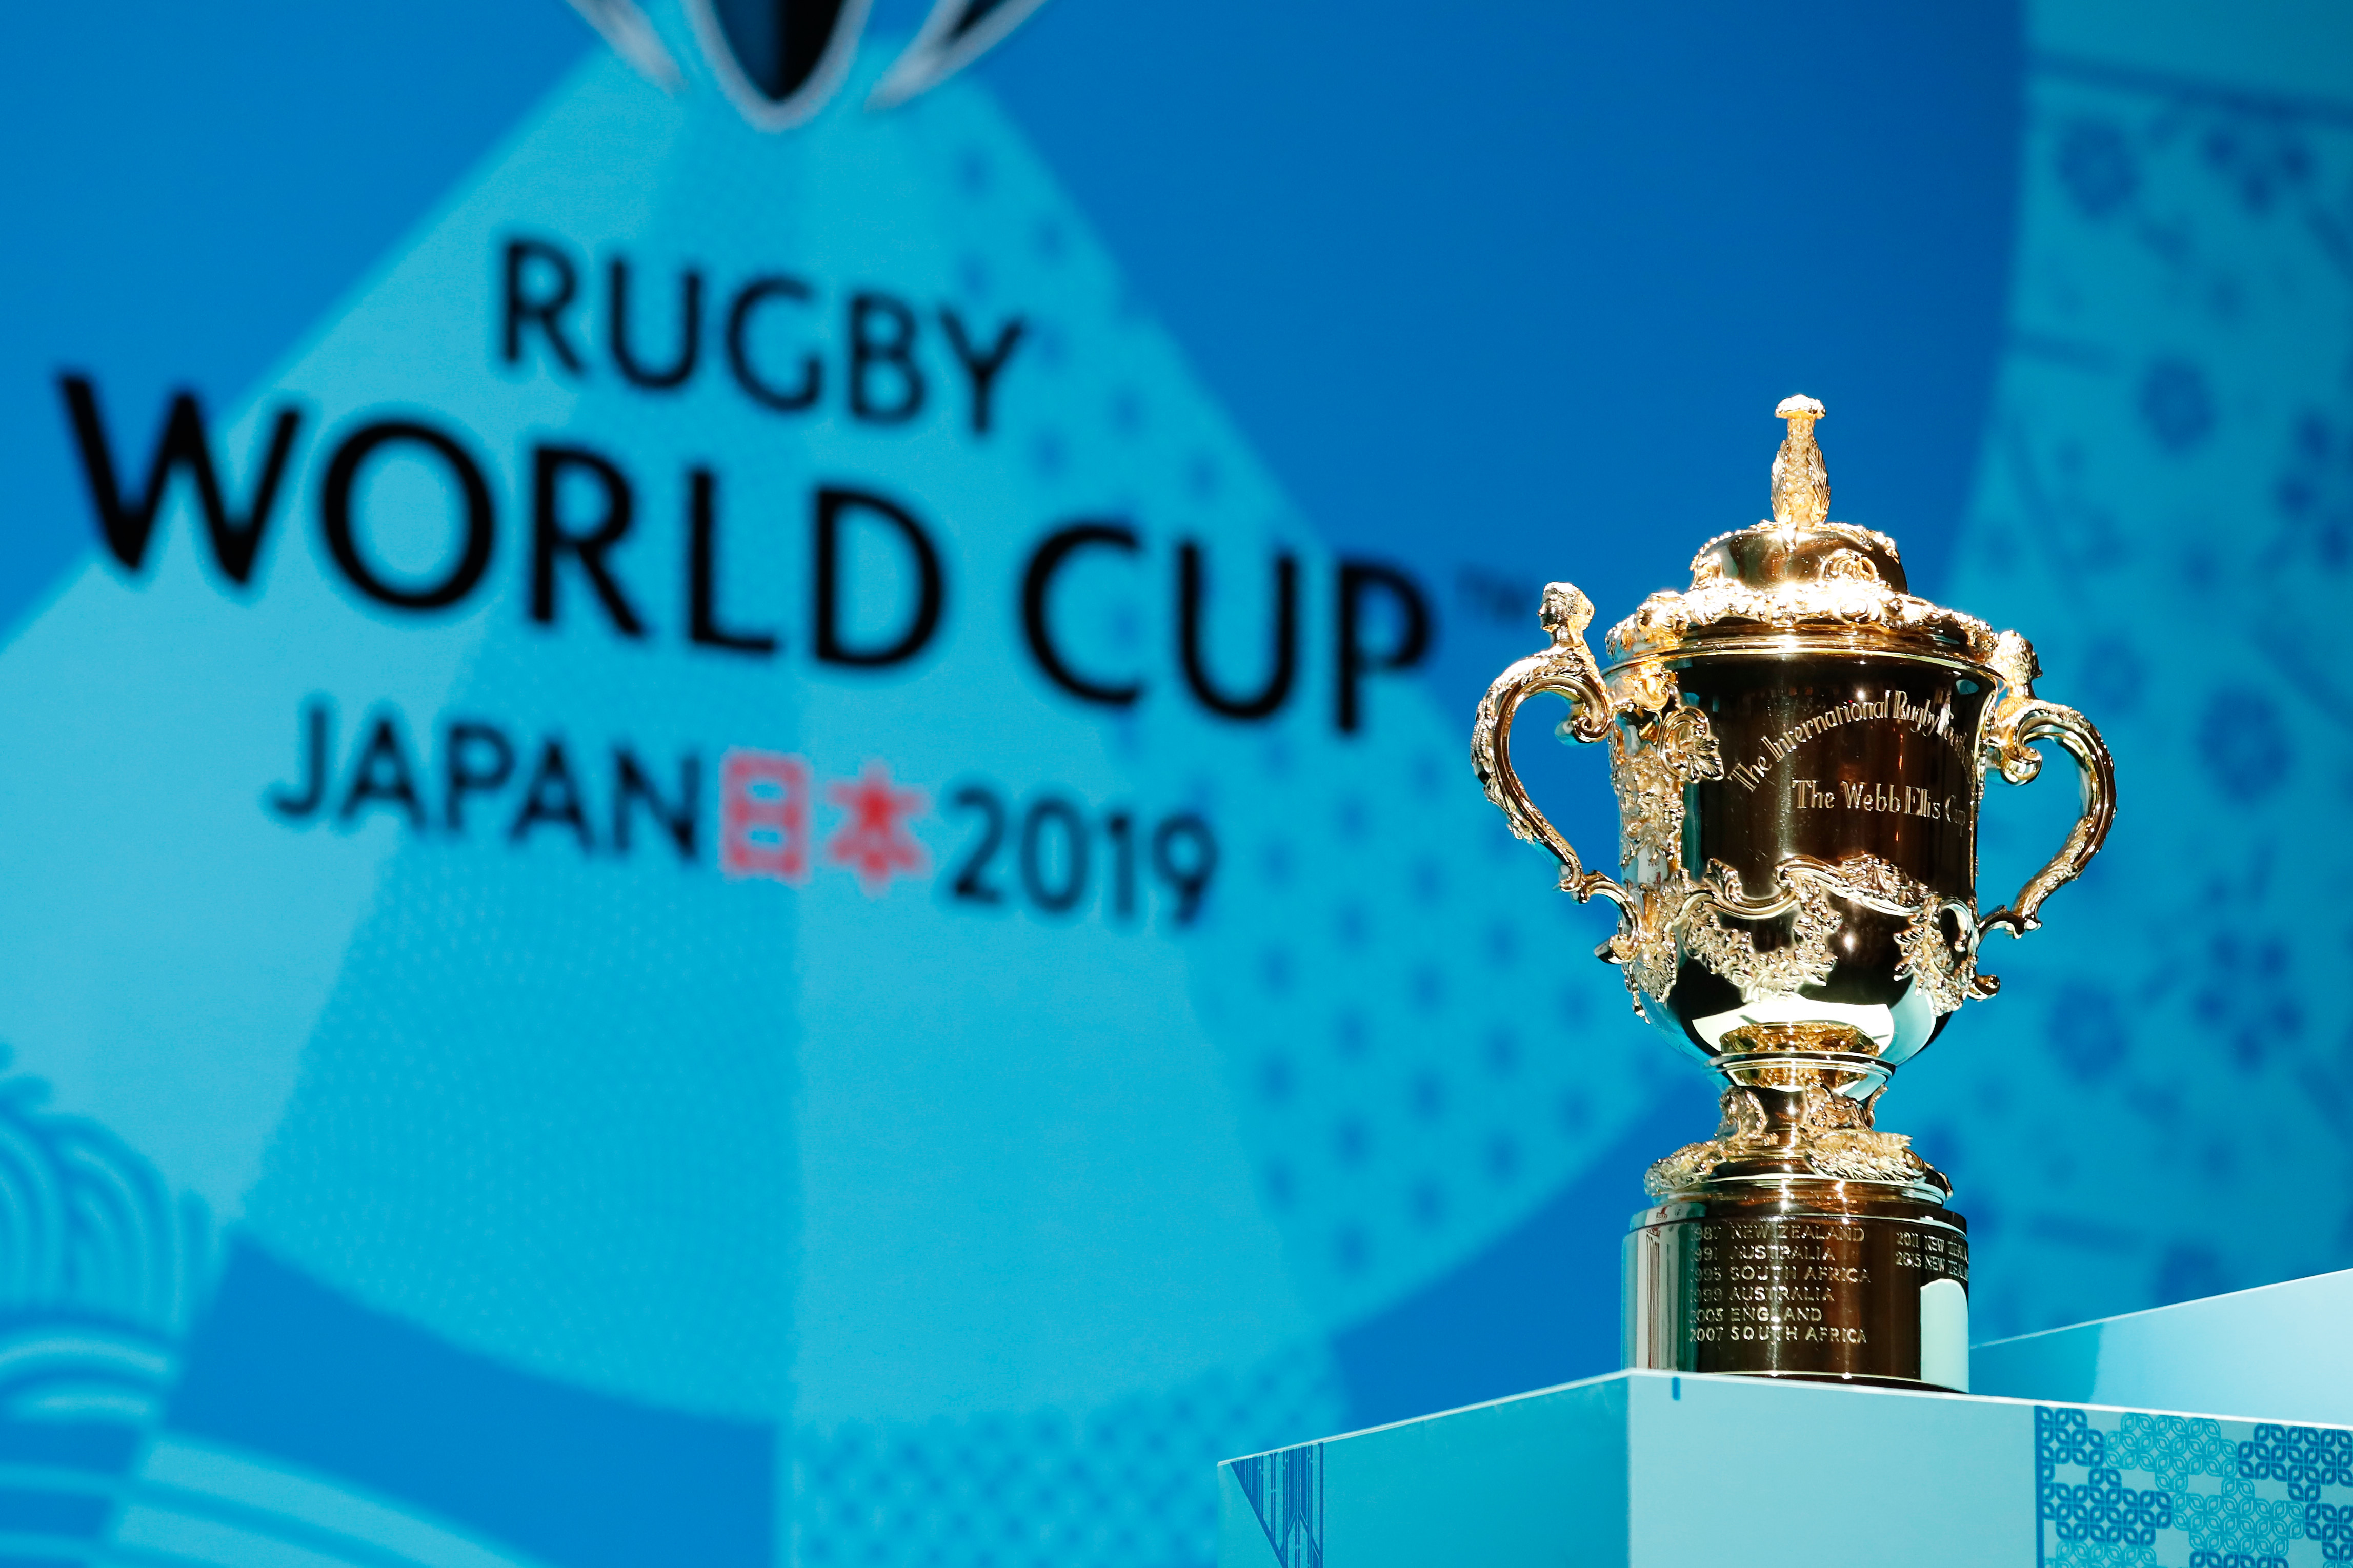 Calendrier 2020 Rugby.Coupe Du Monde De Rugby 2019 Poules Calendrier Horaires